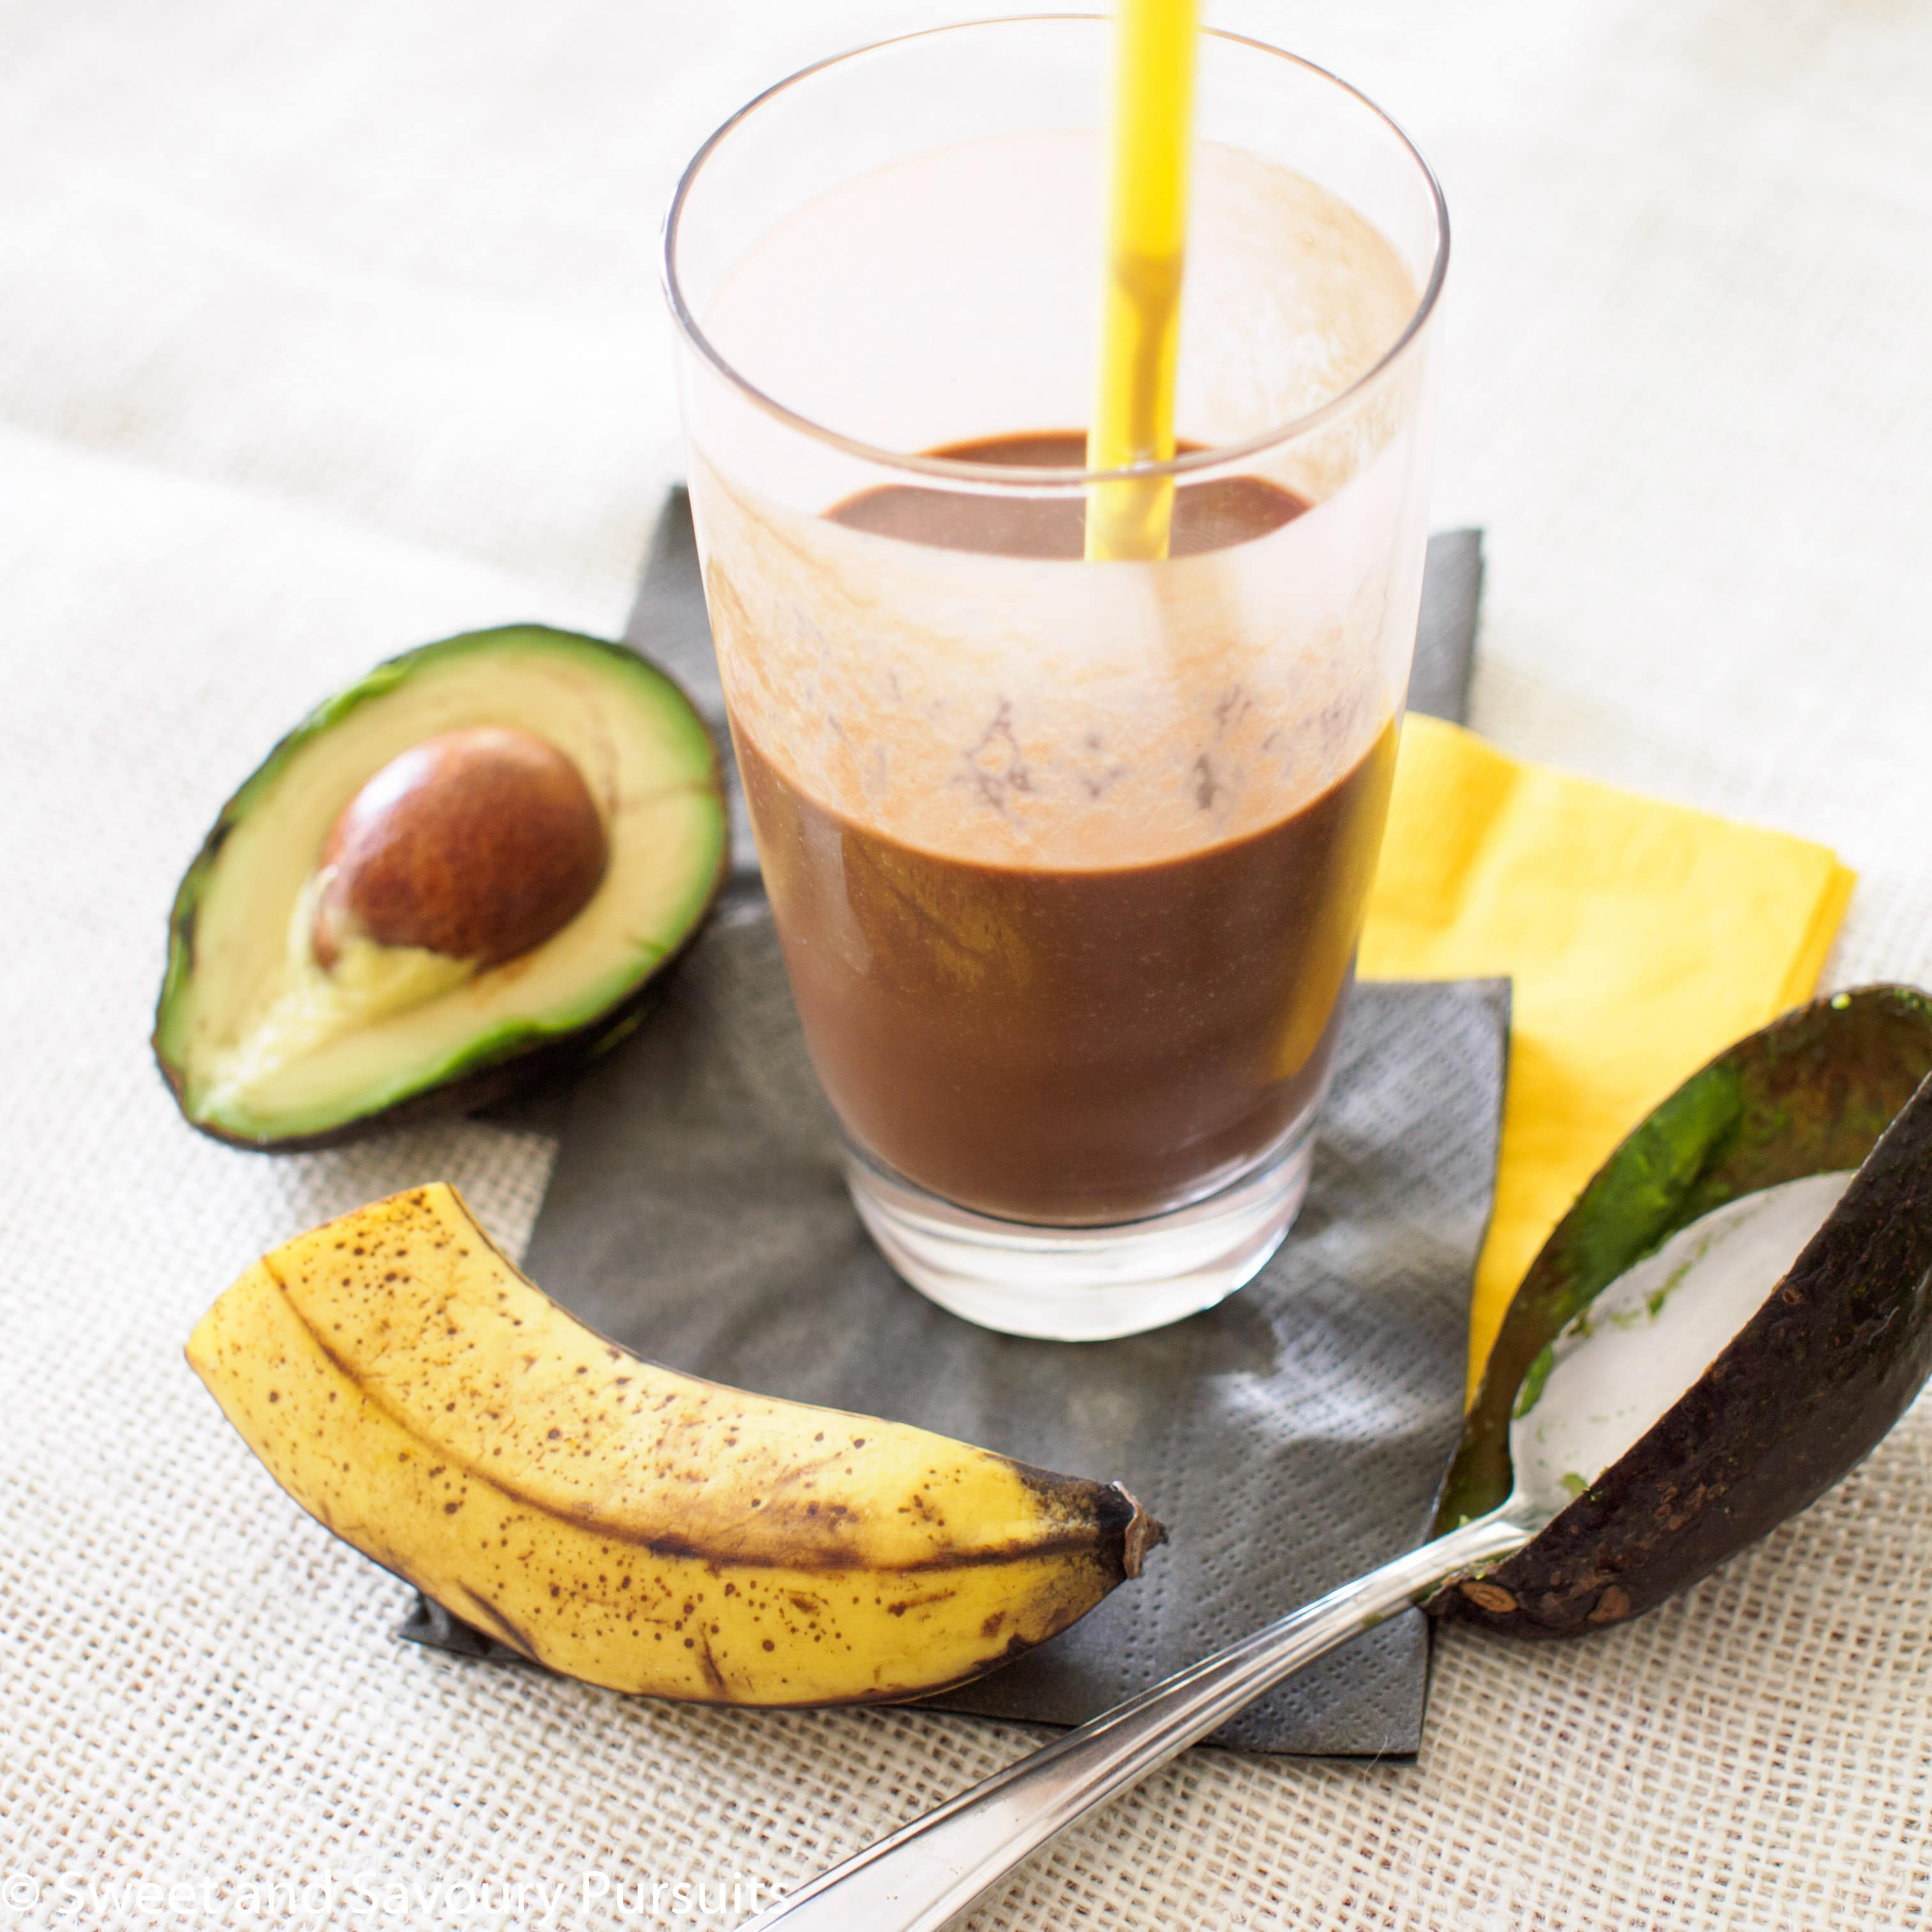 Avocado and Chocolate Smoothie in a tall glass.